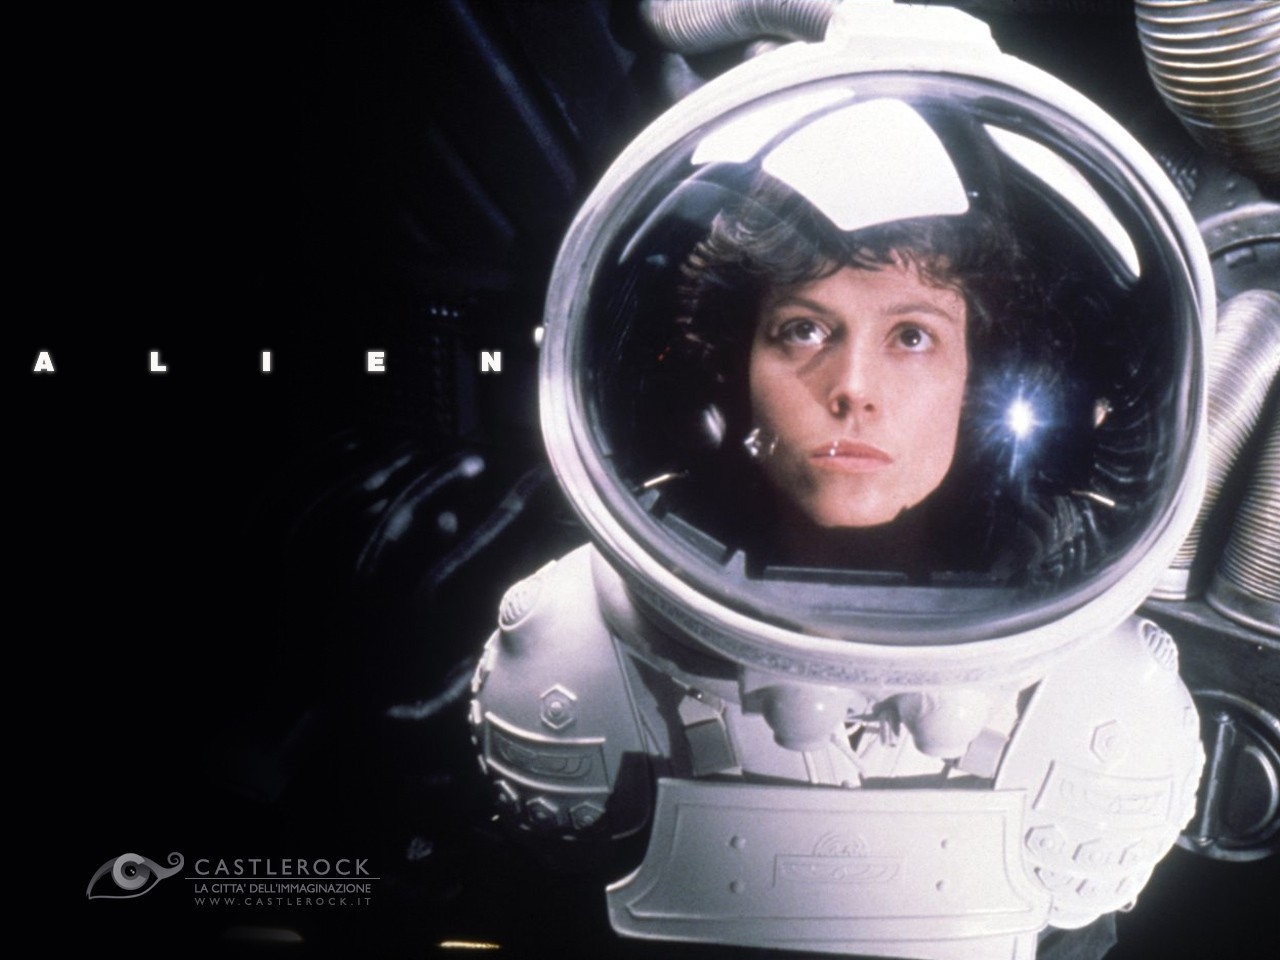 Wallpaper del film Alien con Sigourney Weaver